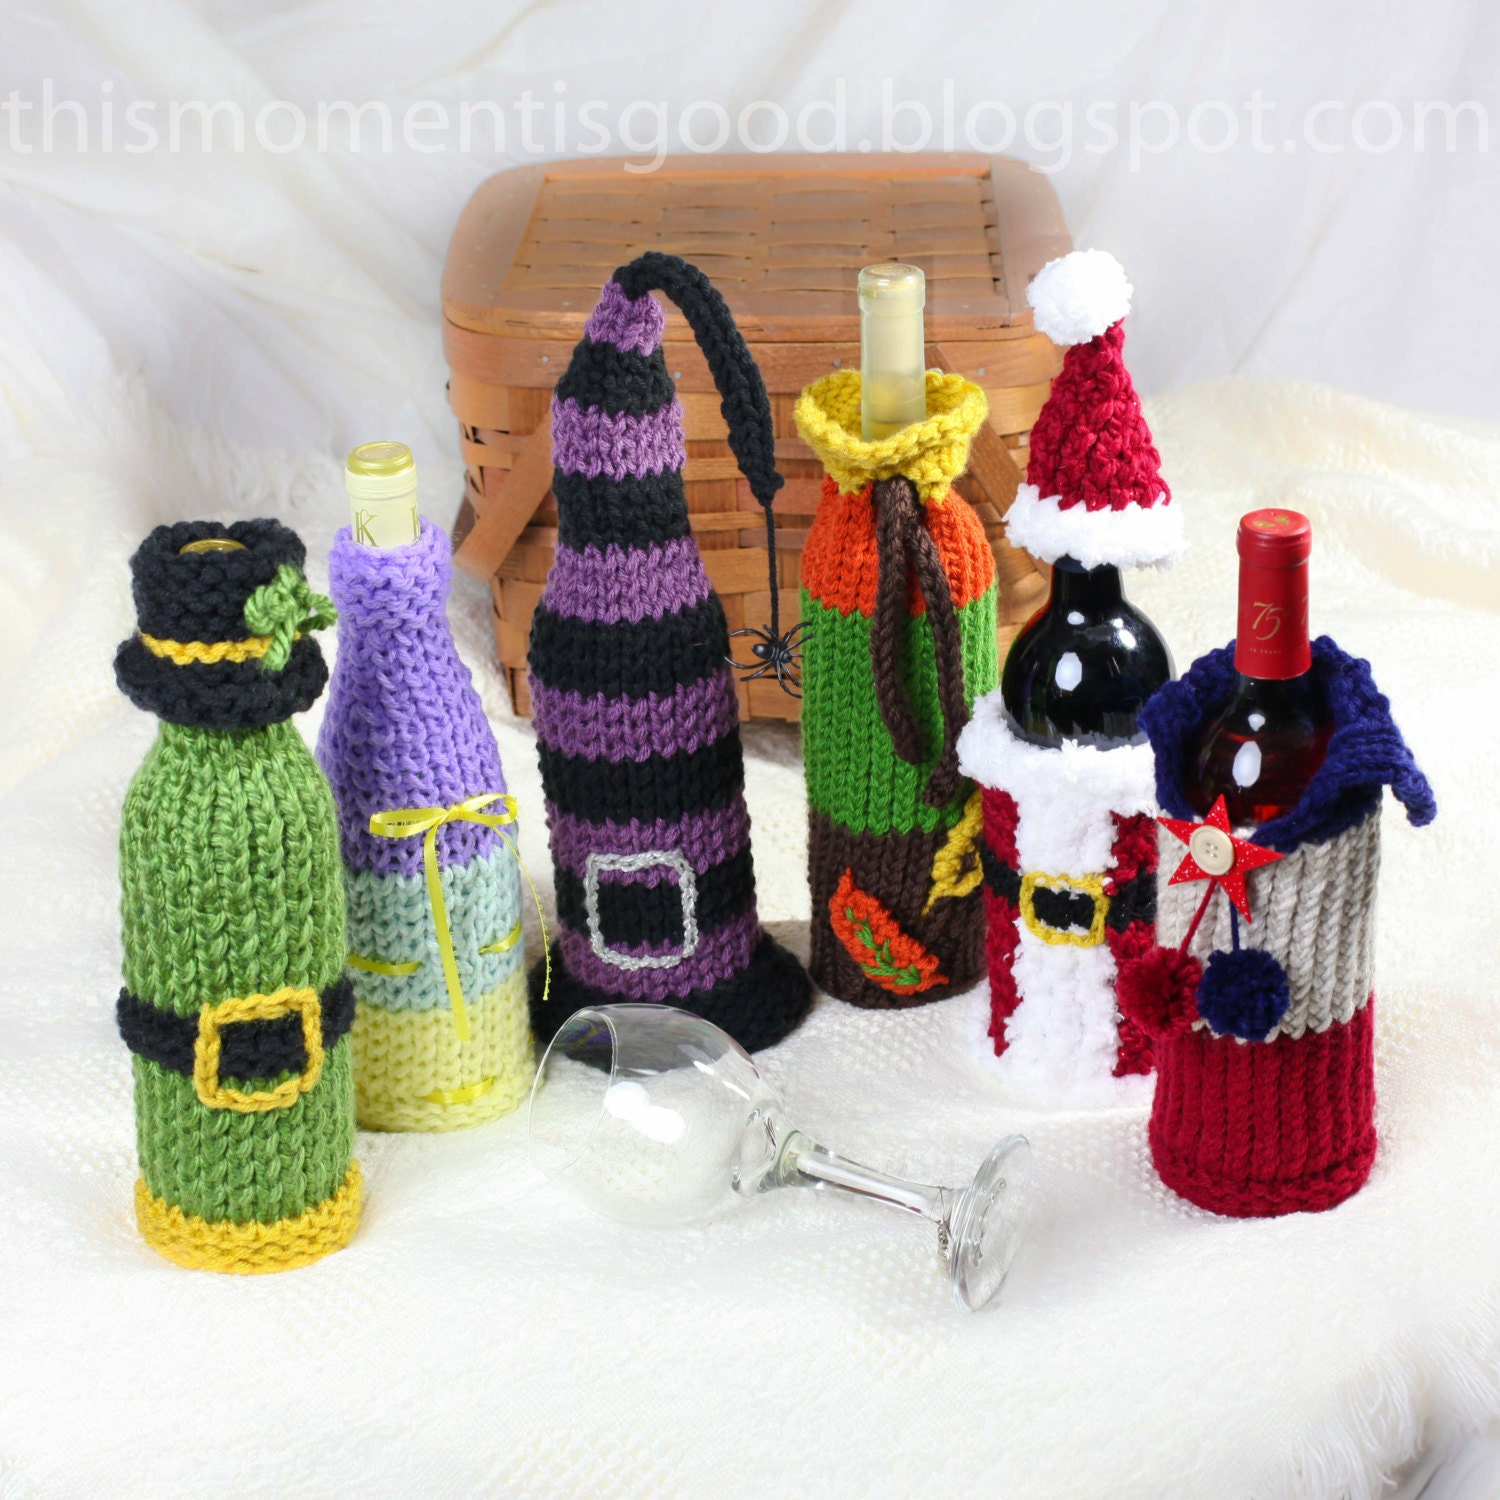 Wine bottle cover knitting pattern